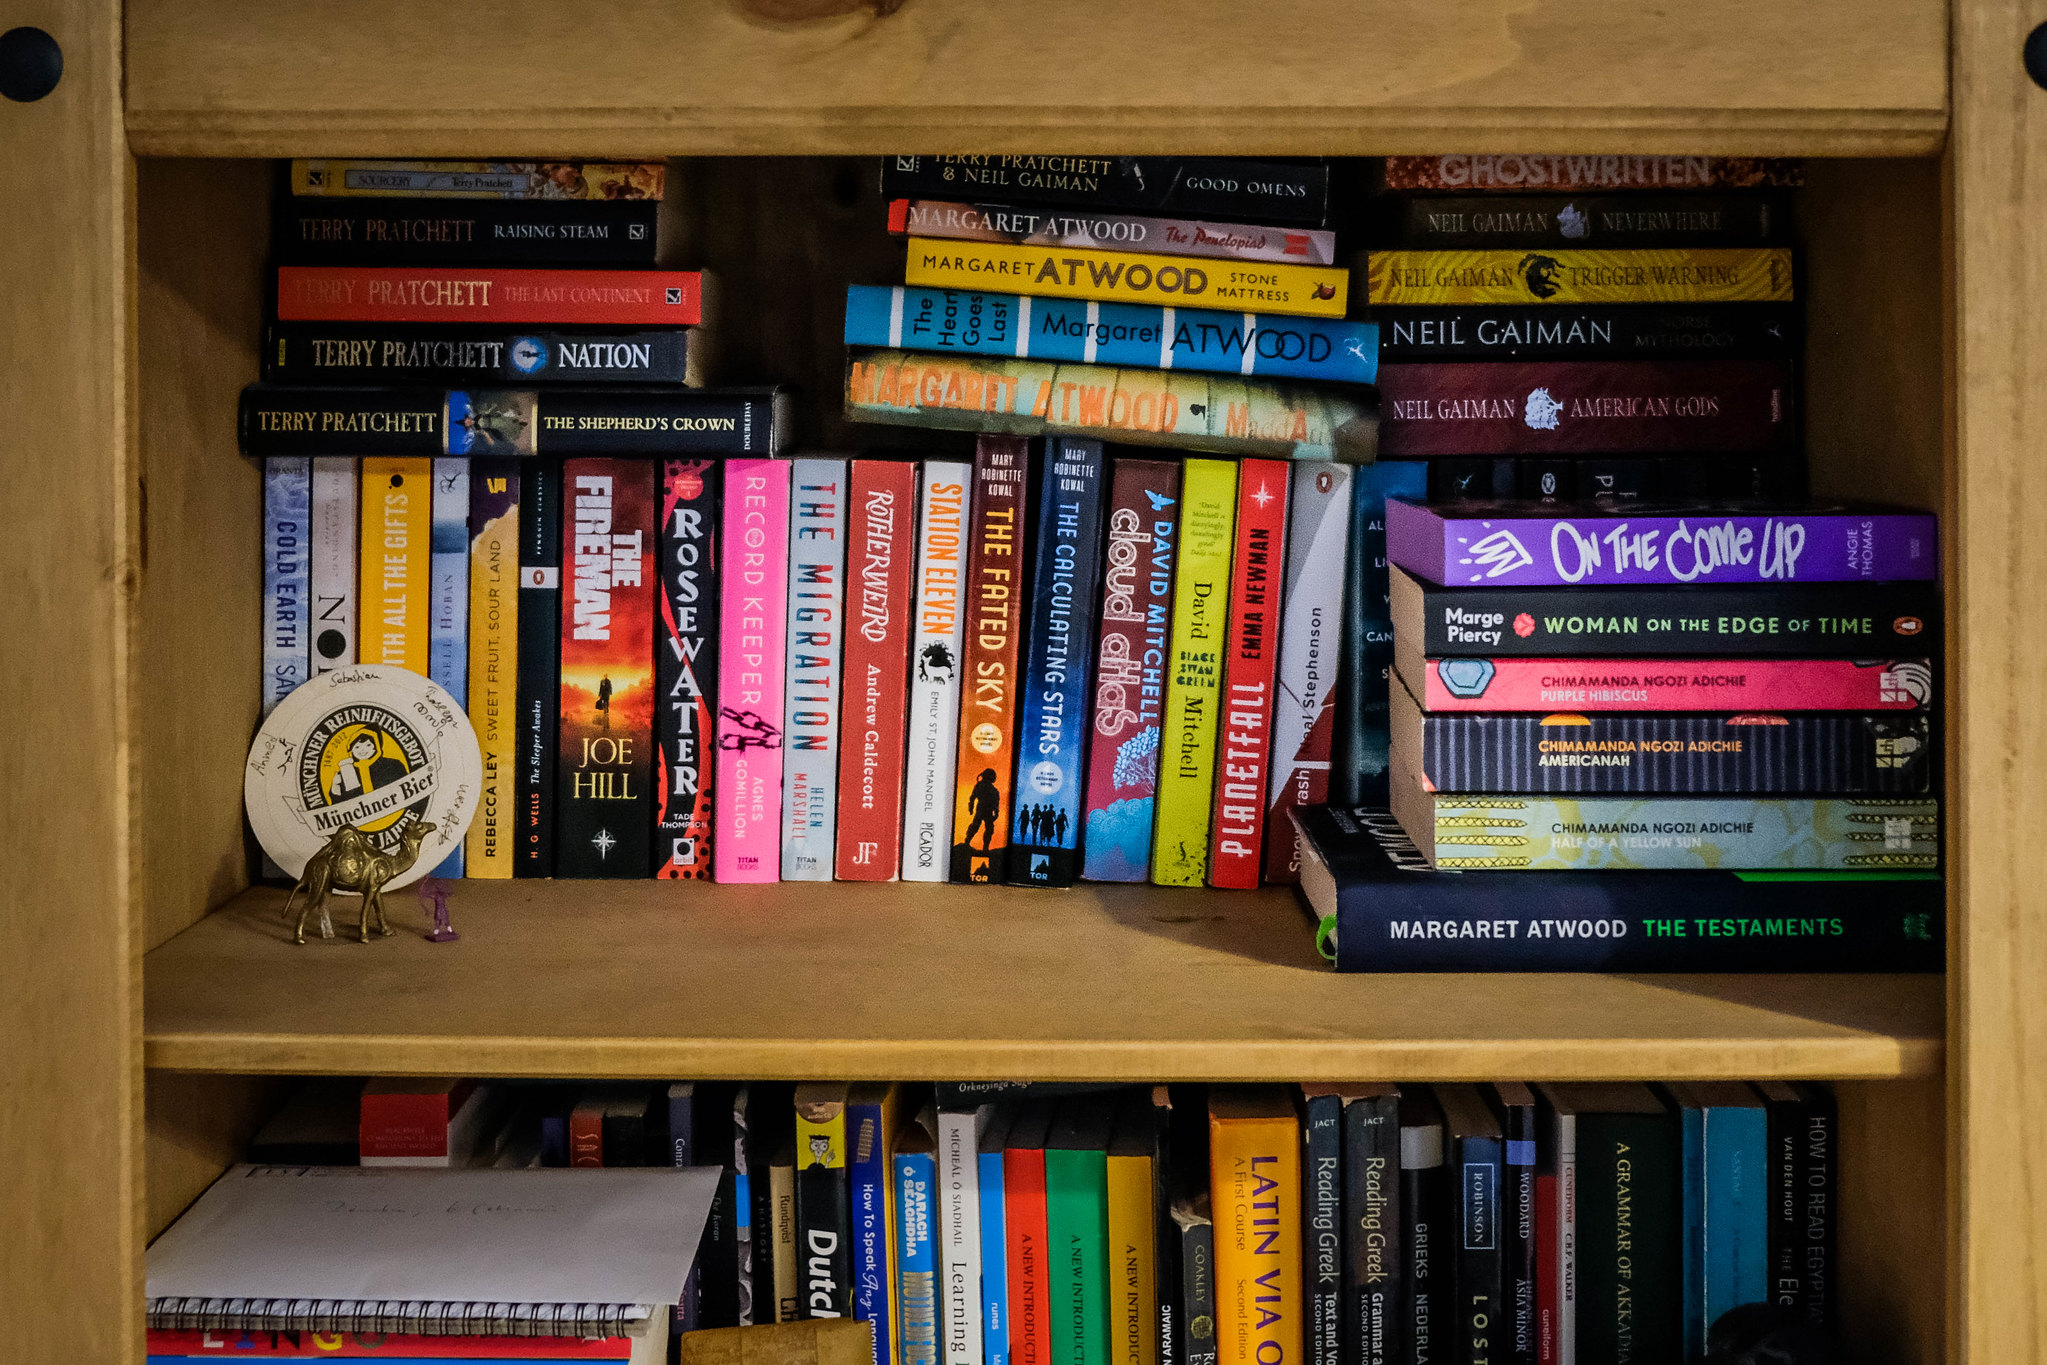 Fiction & science-fiction section of the bookcase